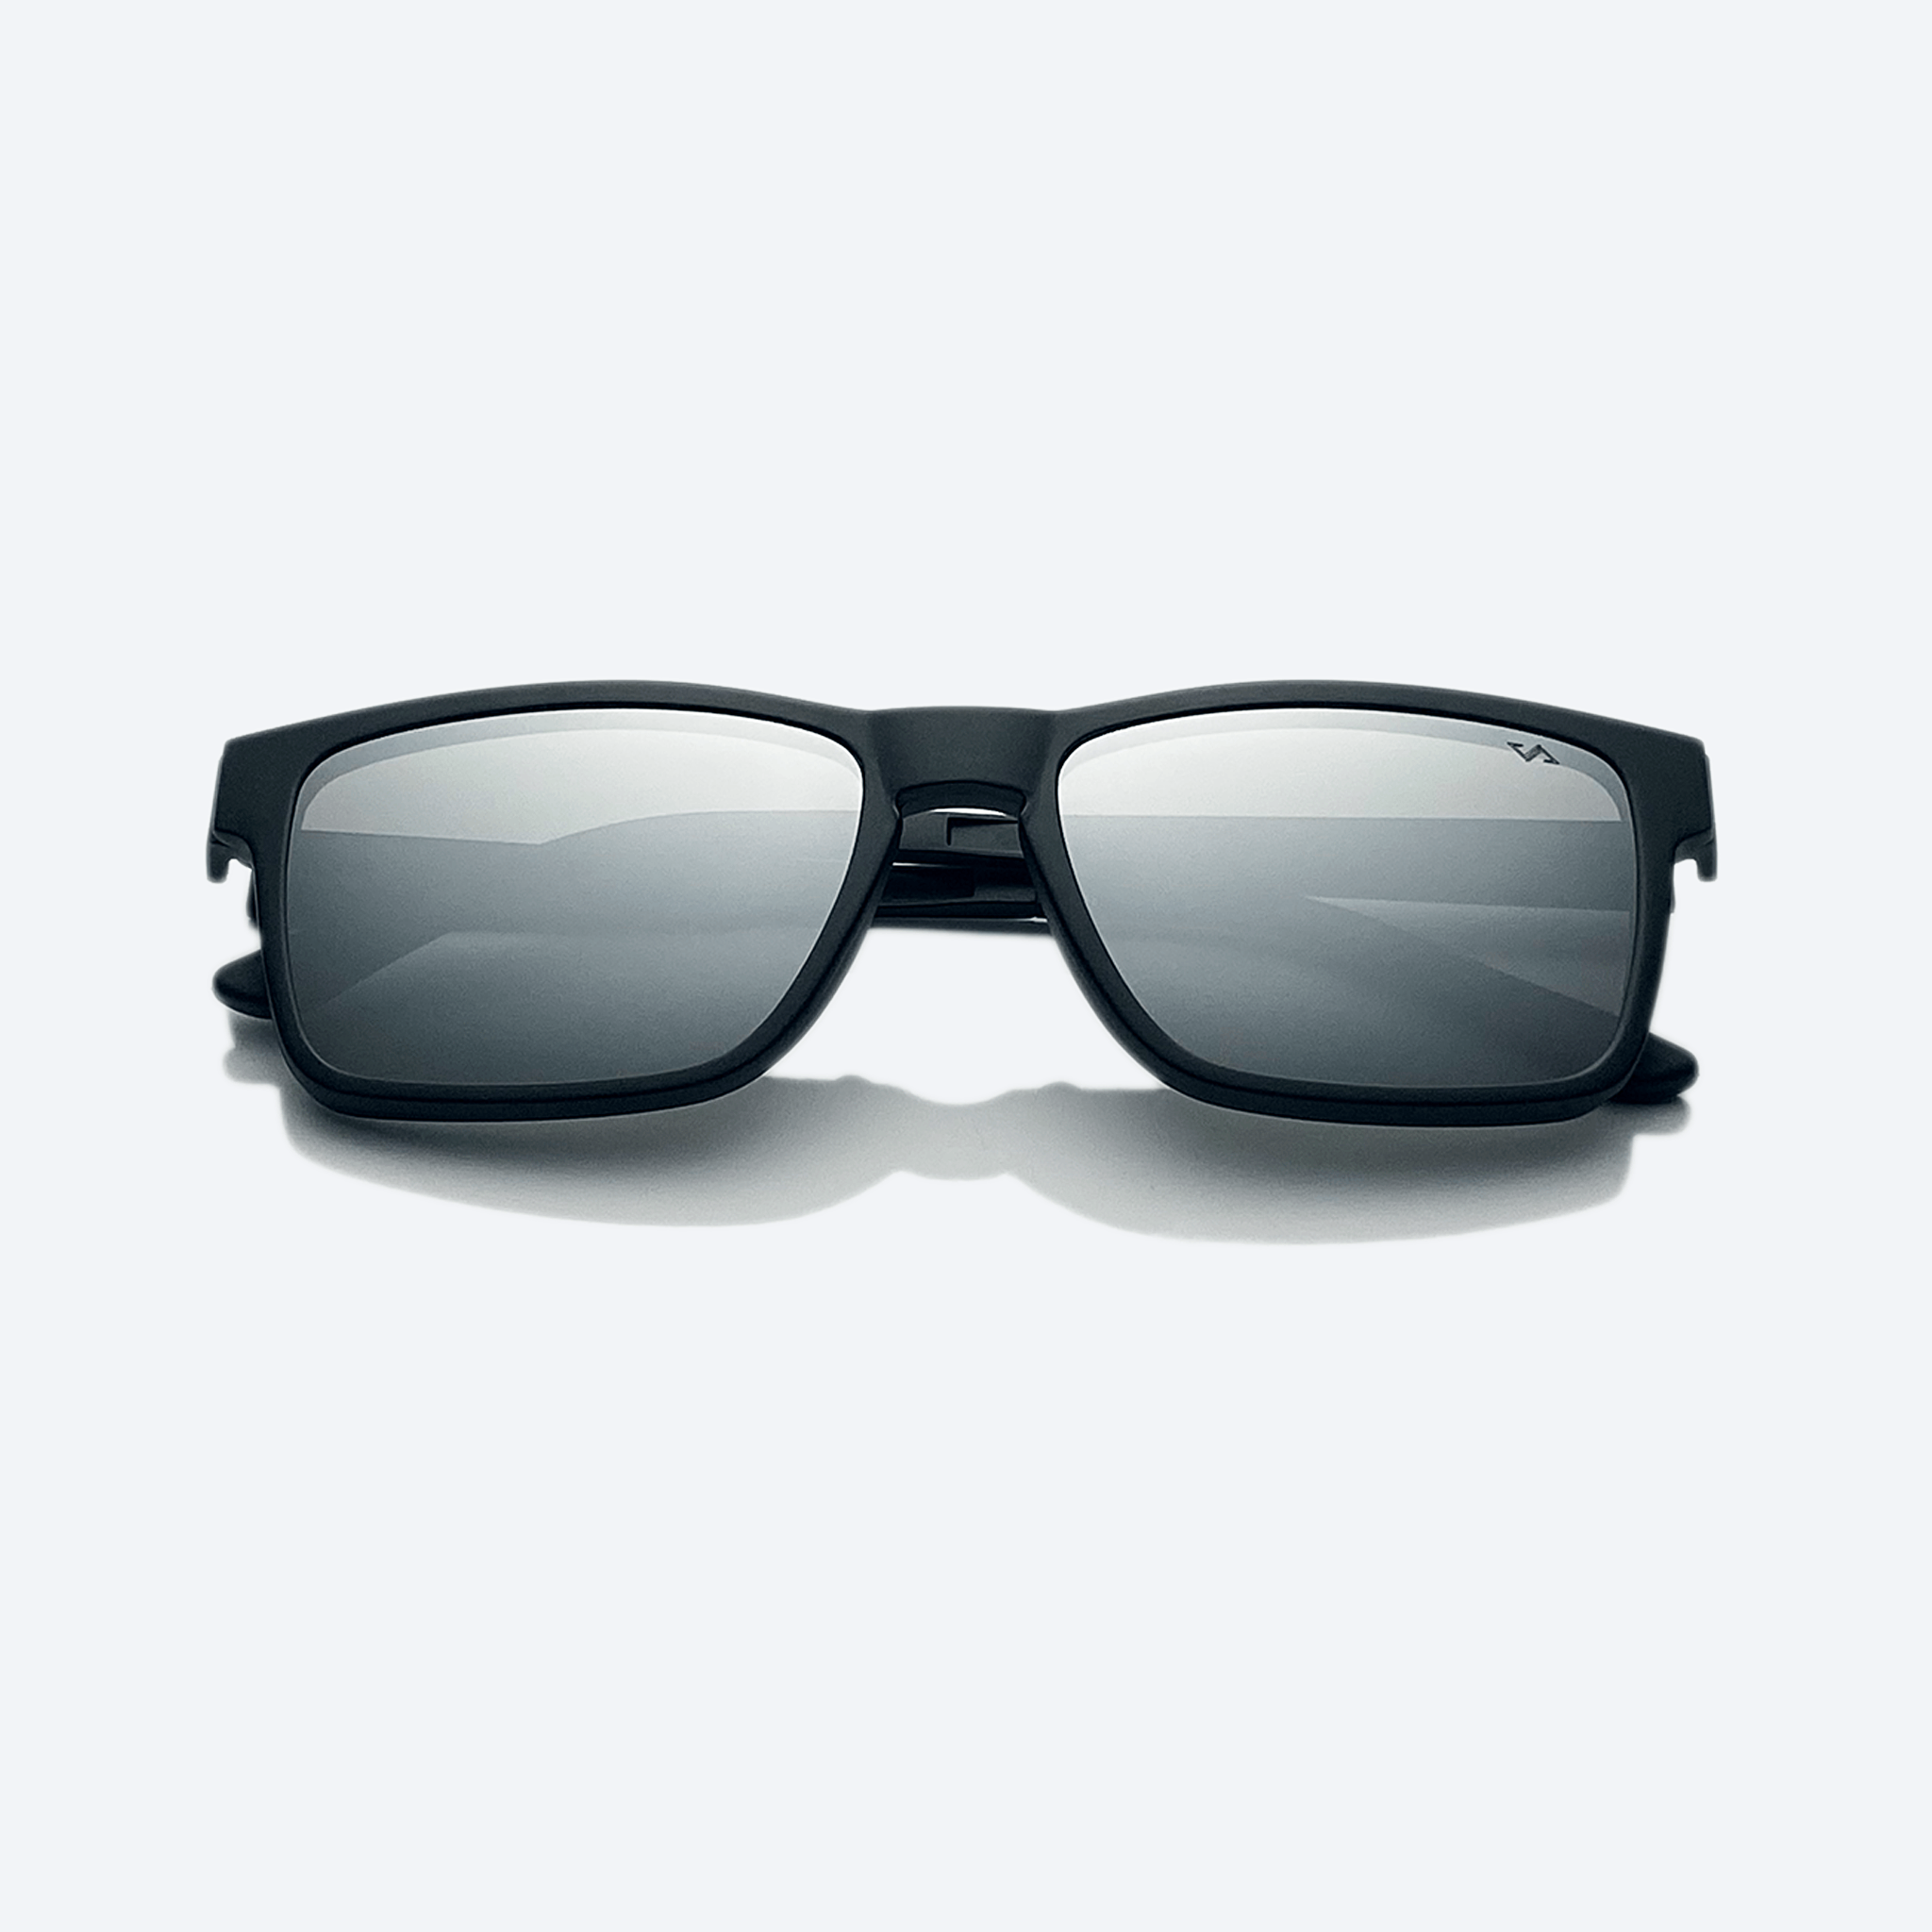 Polarized Sunglasses: Silver